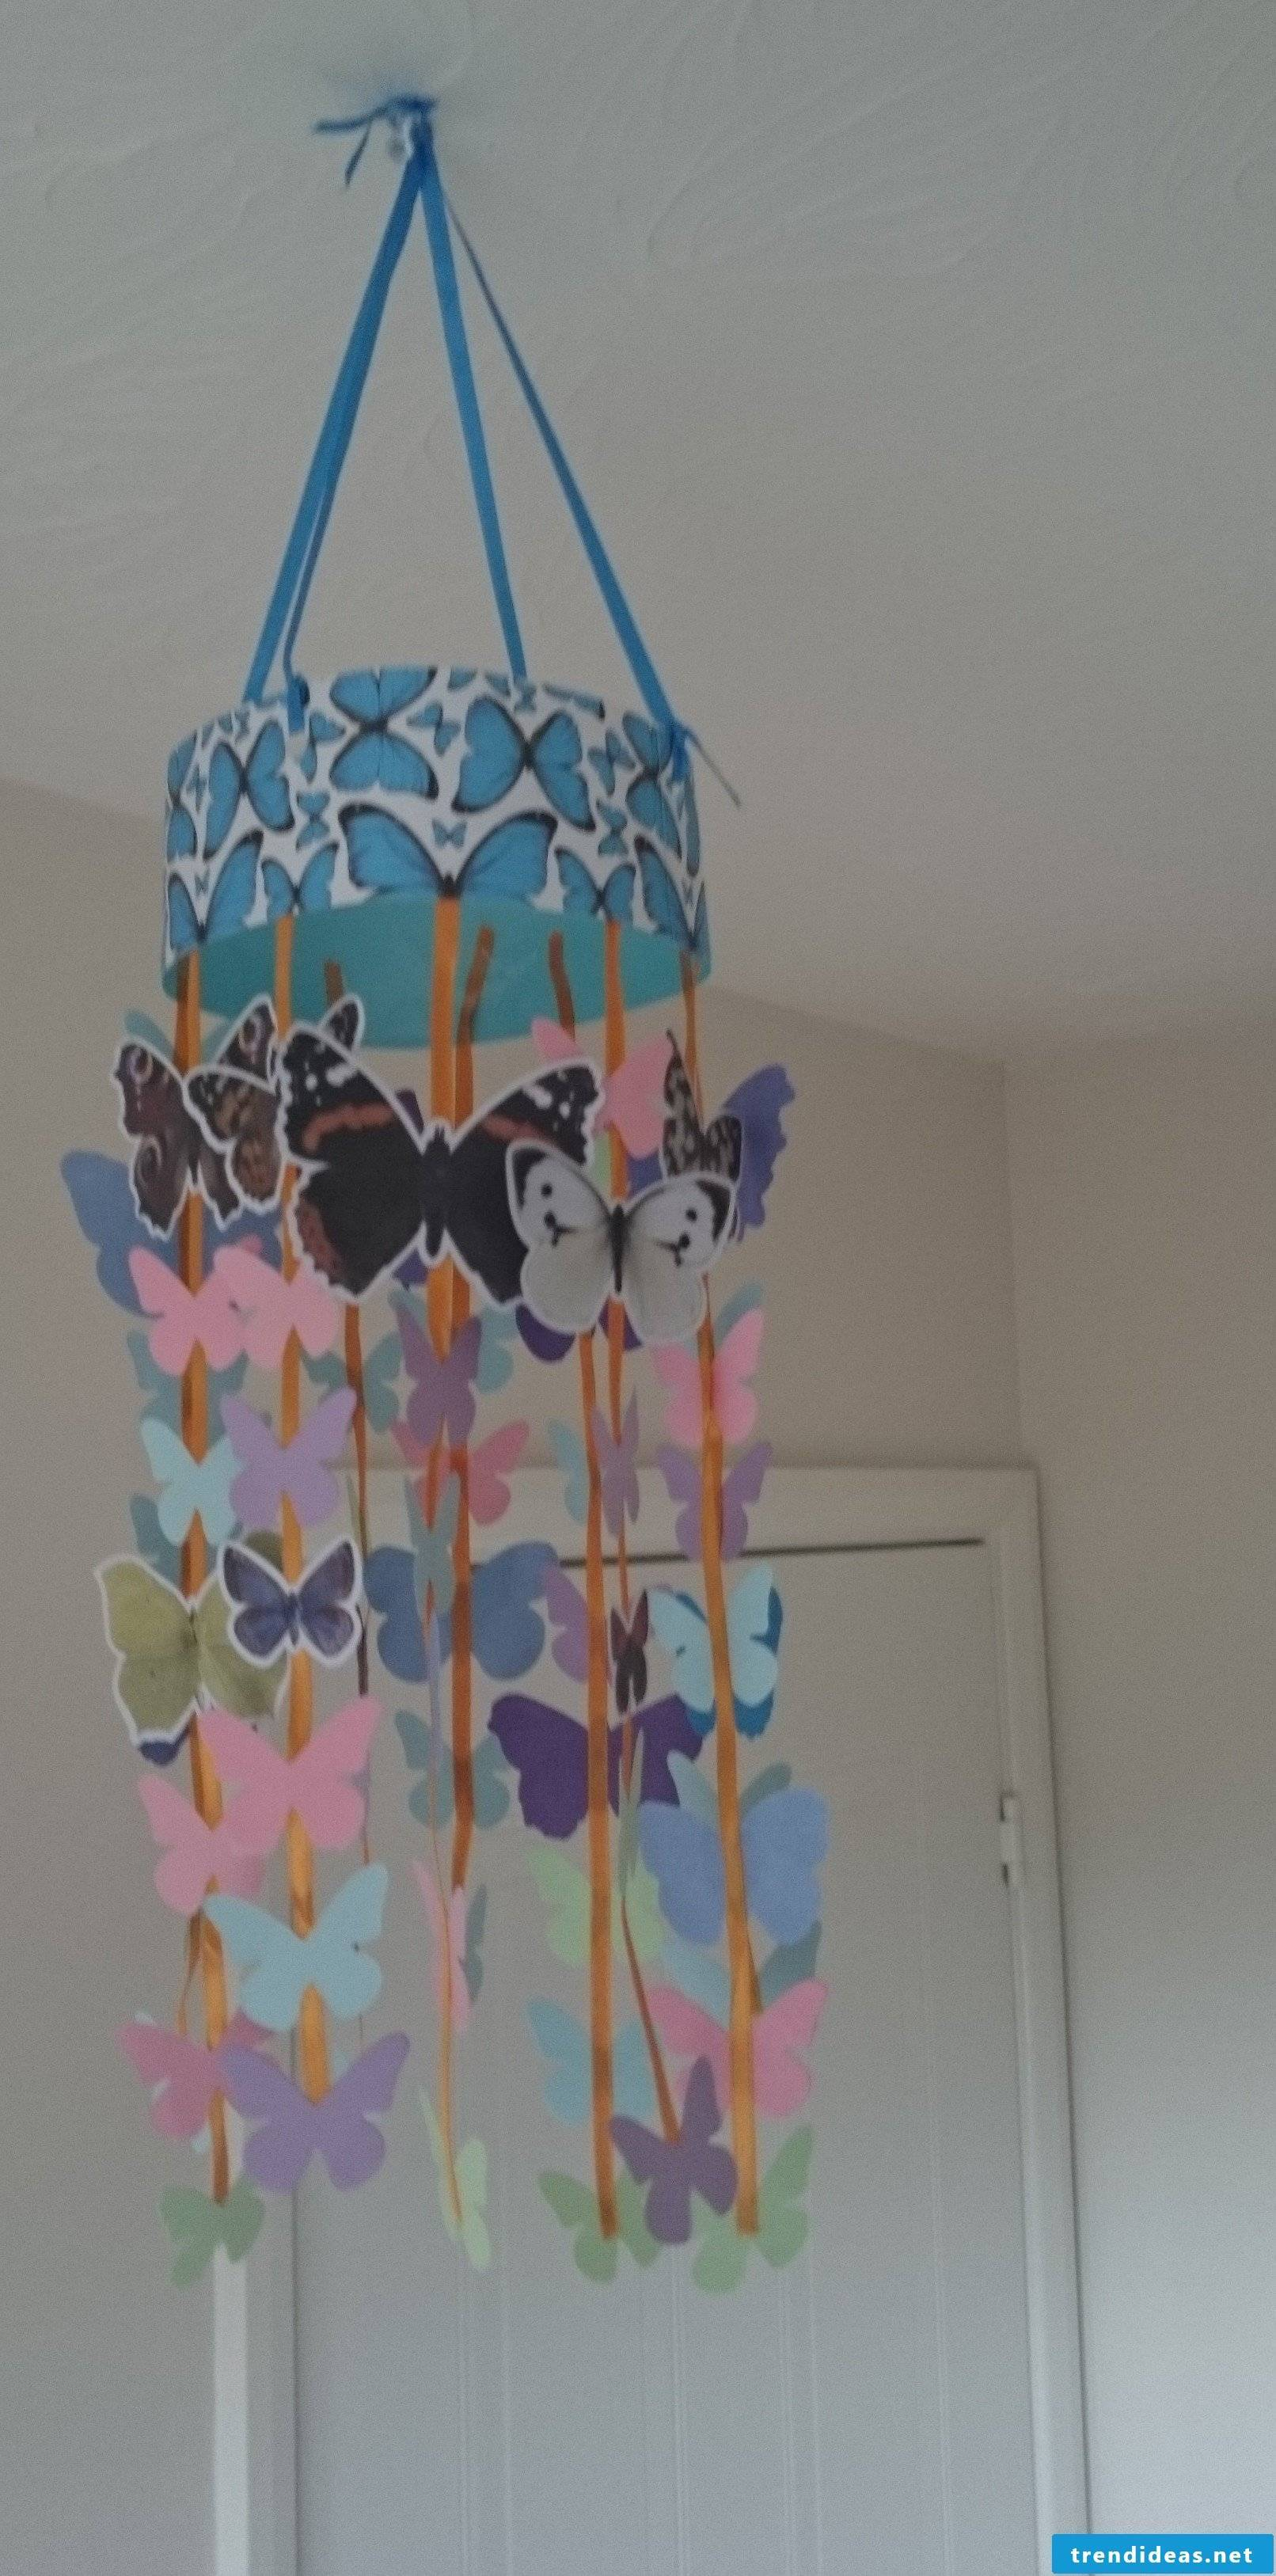 Butterflies always have a place at home